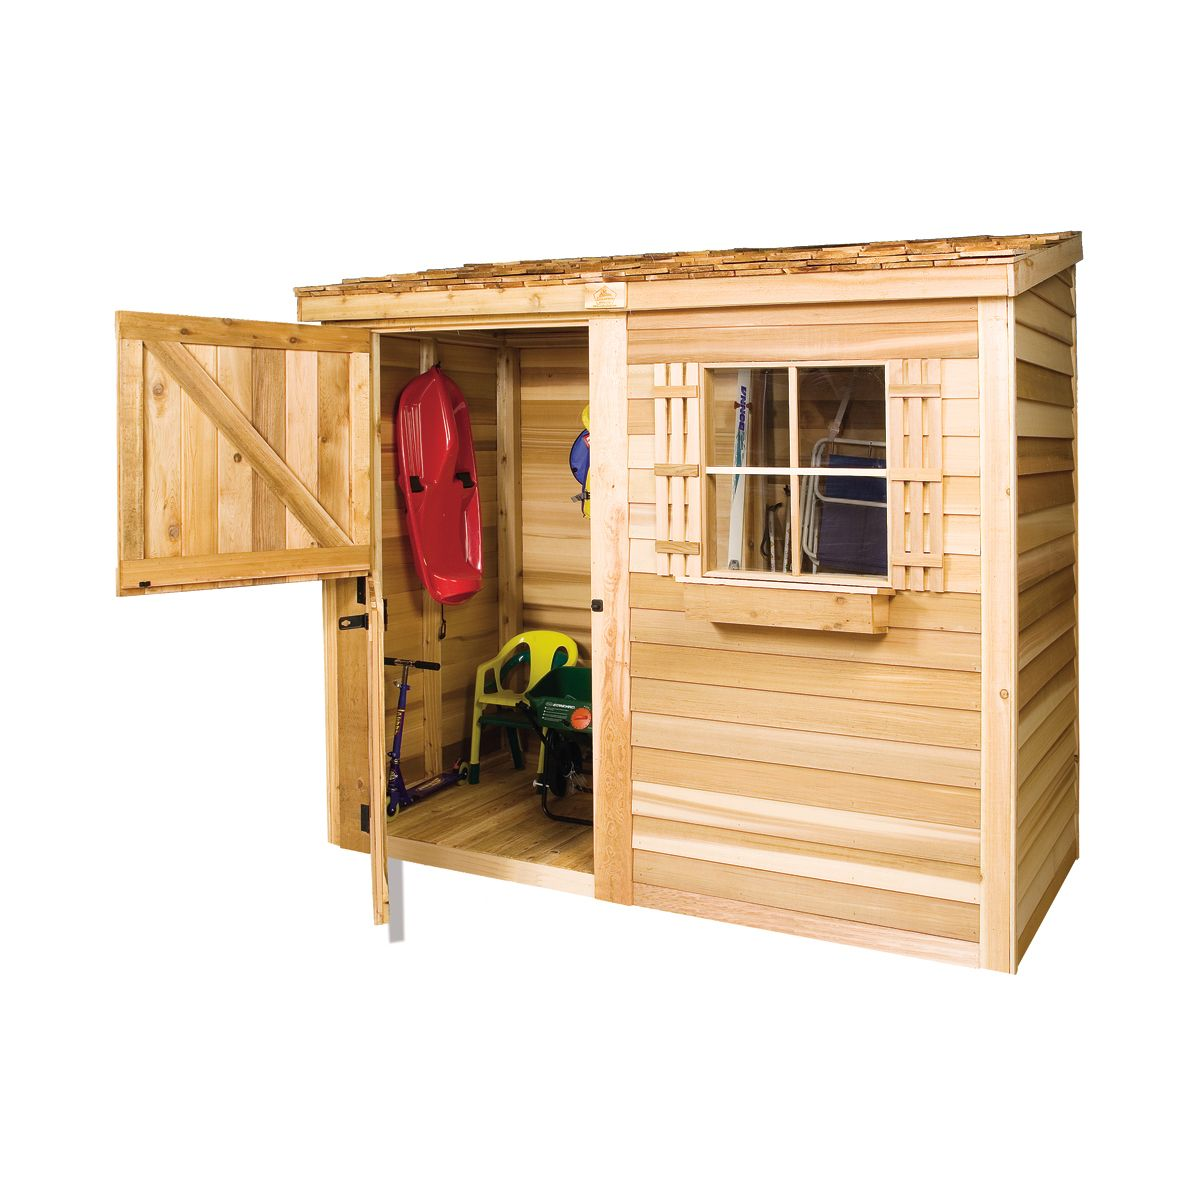 Garden Sheds At Lowes shop cedar shed bayside shed at lowe's canada. find our selection